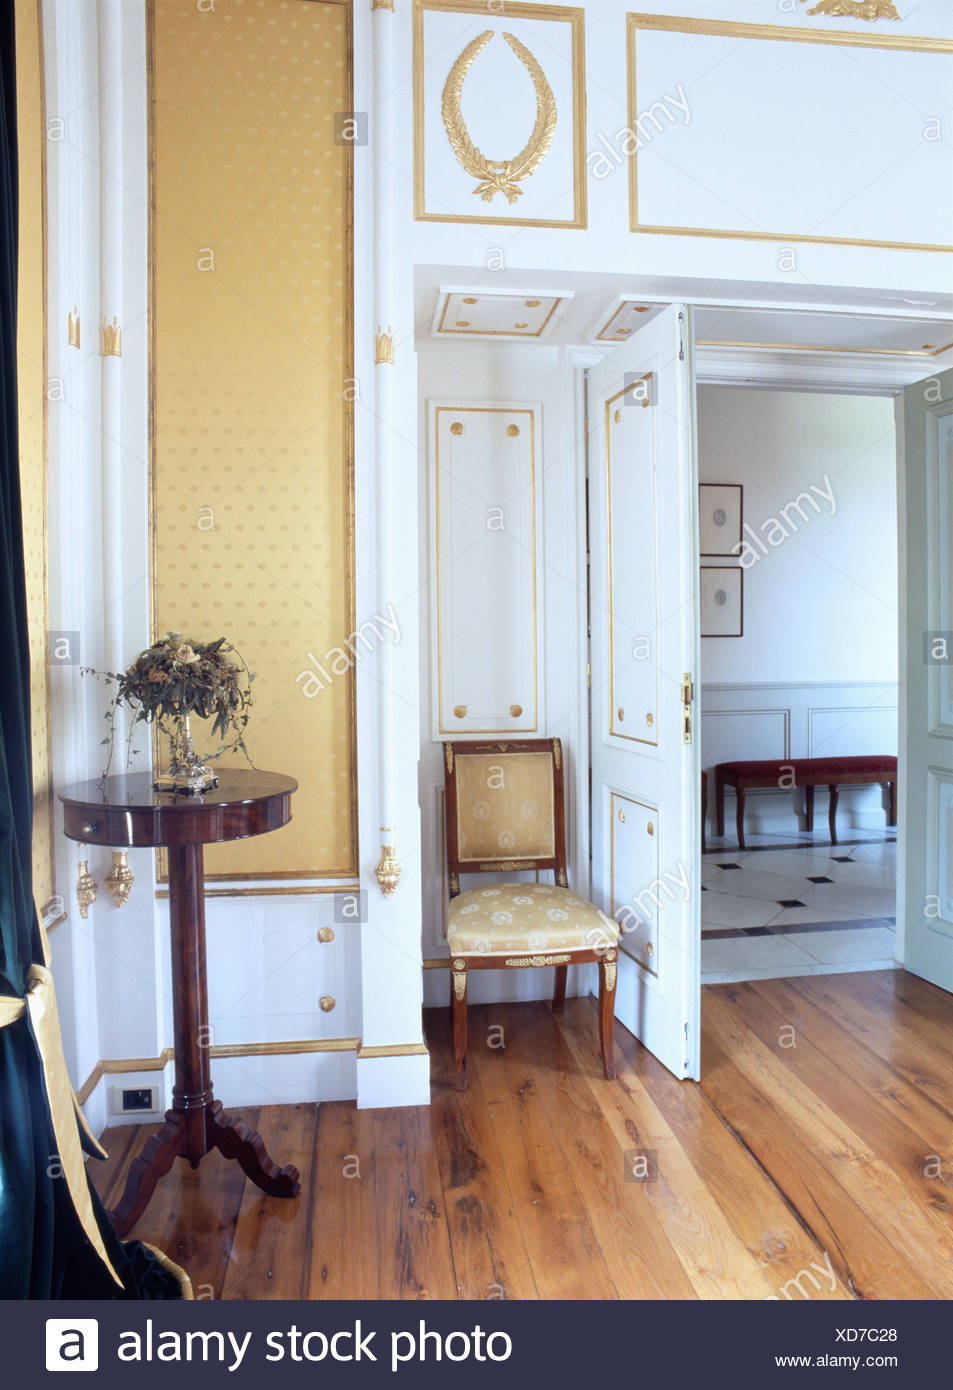 Antique Chair Beside Open Double Doors In Opulent Country Dining Room With Gilded Paintwork And Wooden Flooring